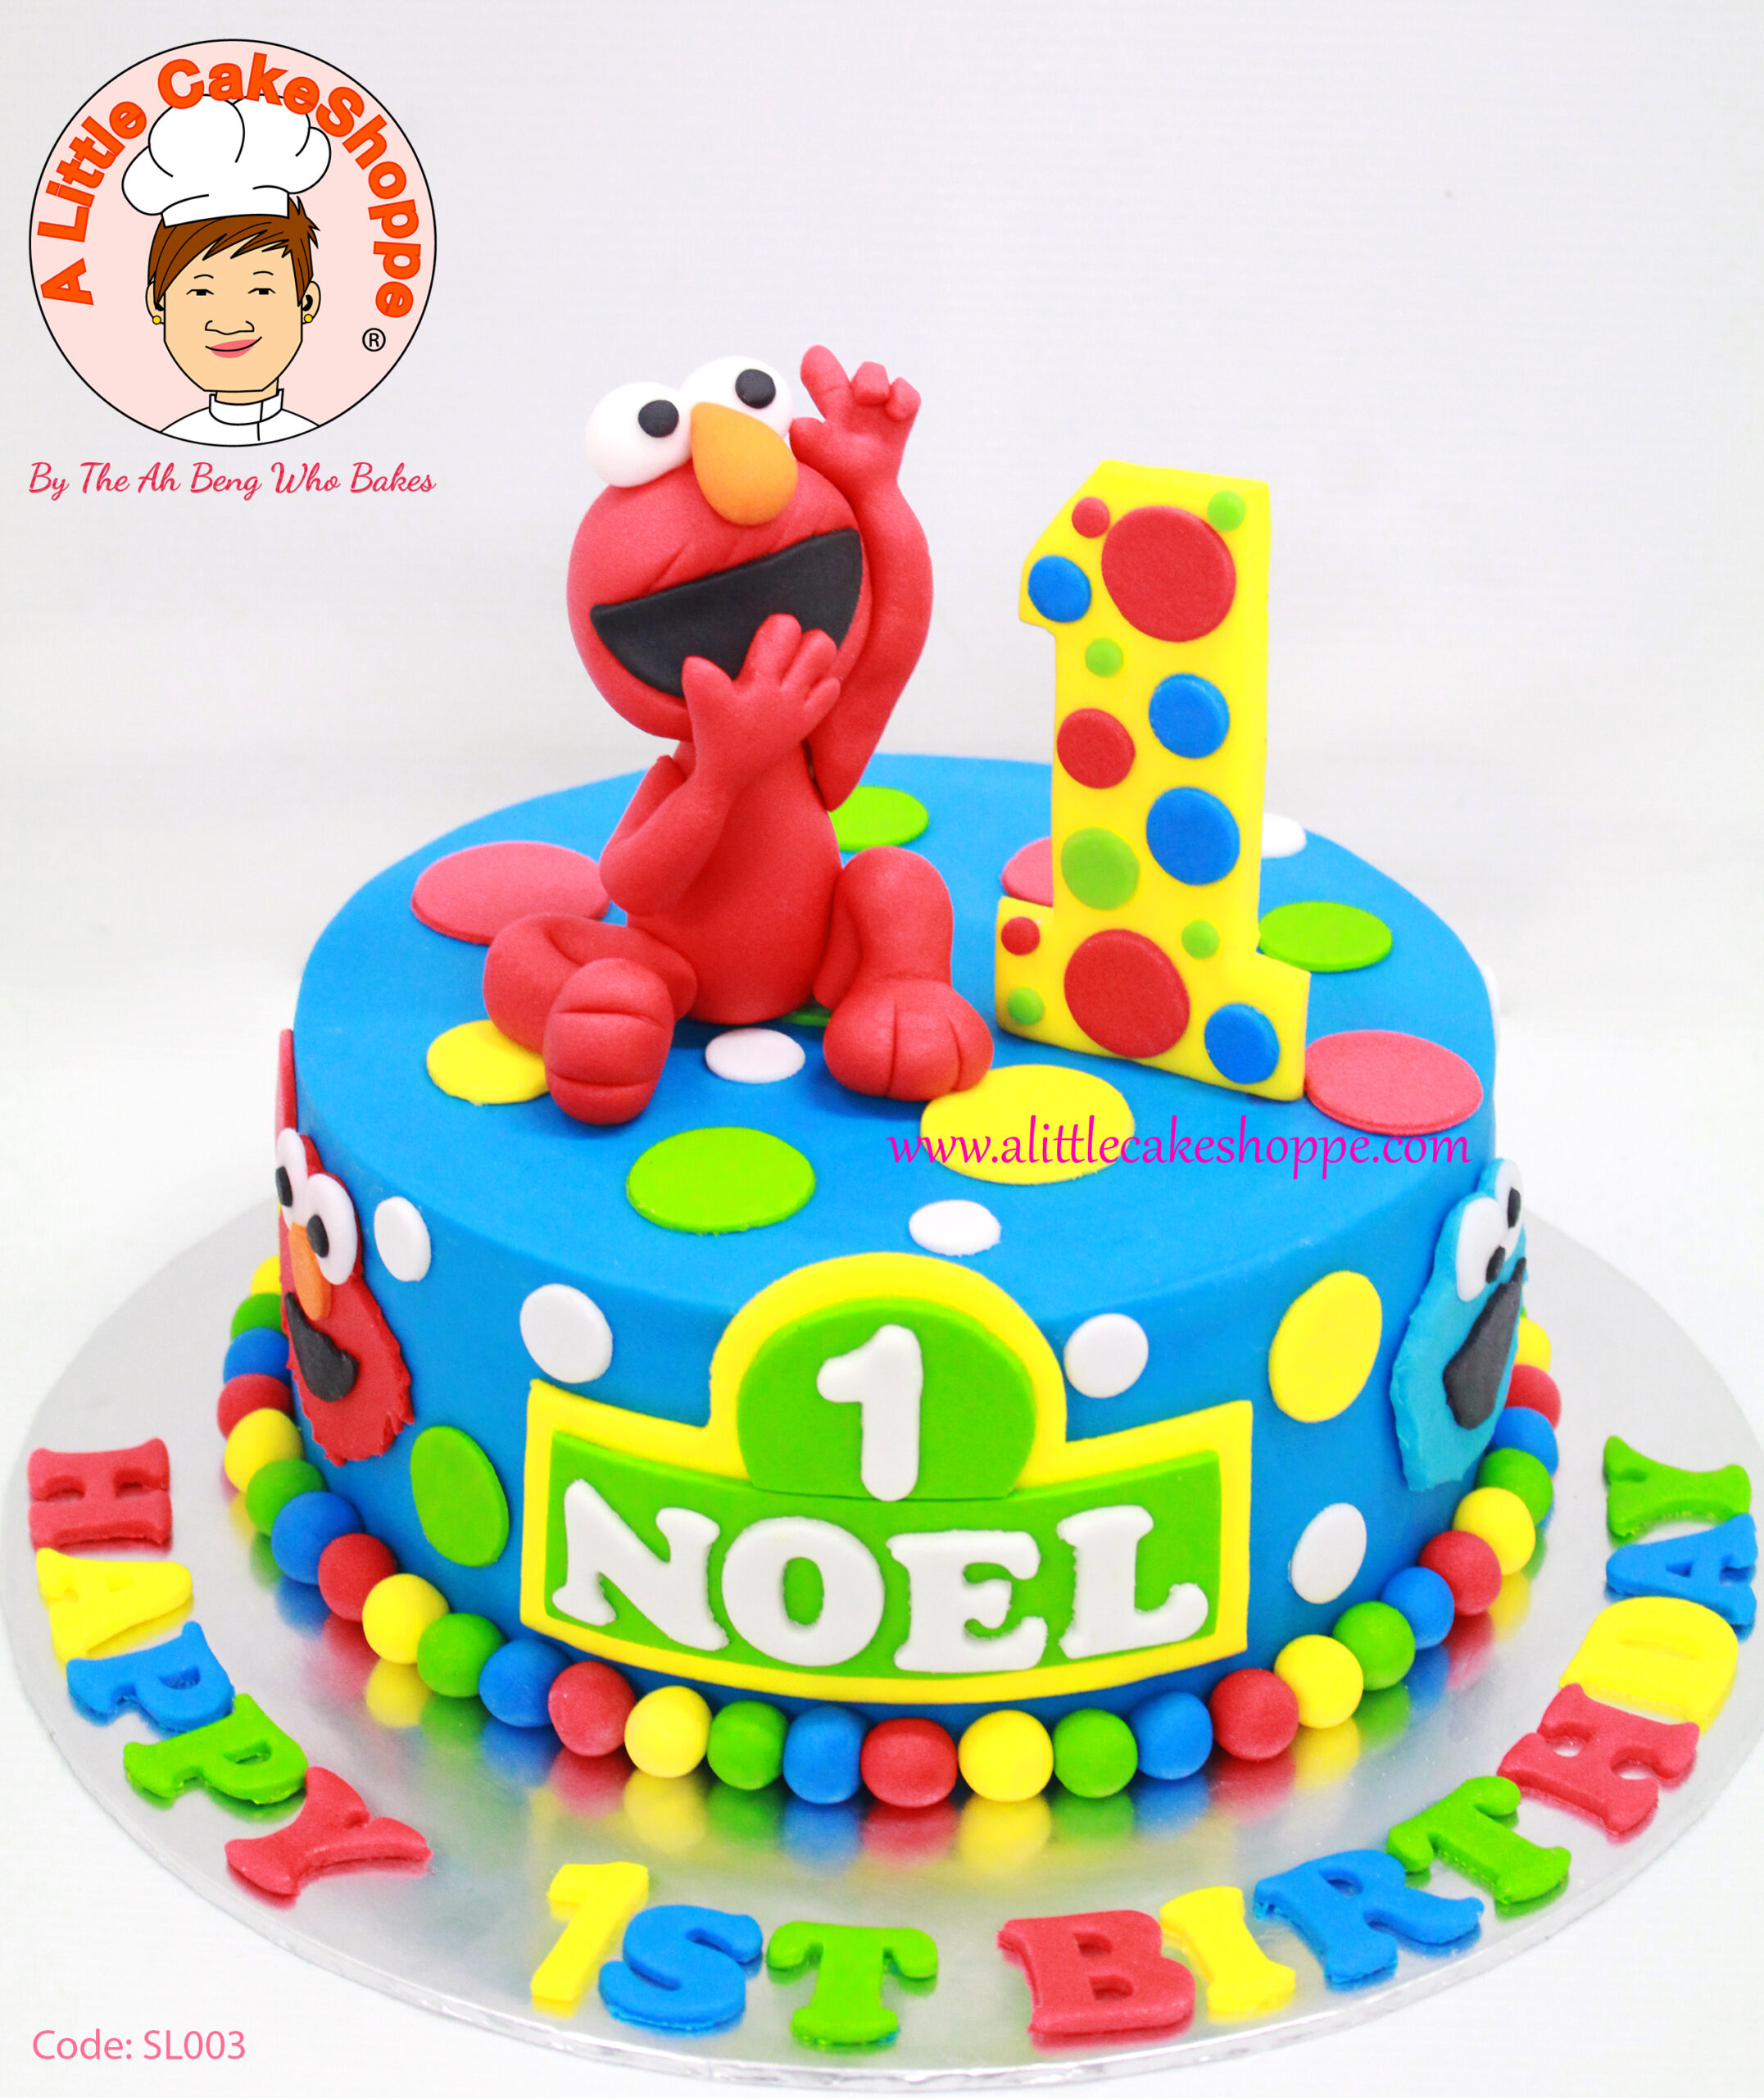 Best Customised Cake Singapore custom cake 2D 3D birthday cake cupcakes desserts wedding corporate events anniversary fondant fresh cream buttercream cakes alittlecakeshoppe a little cake shoppe compliments review singapore bakers SG cakeshop ah beng who bakes elmo sesame street cookie monster